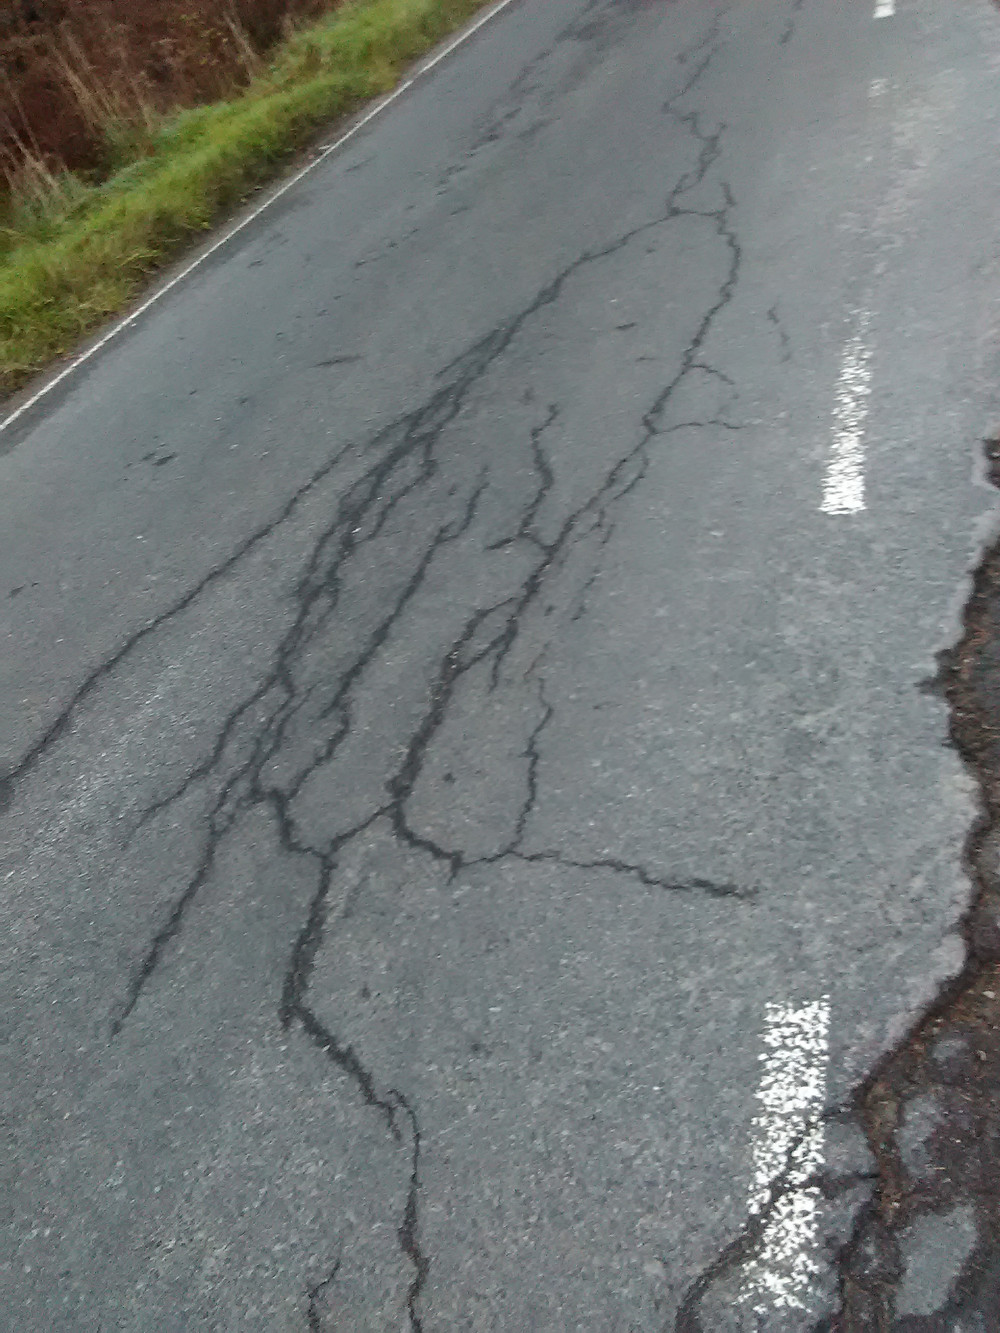 Road damage caused by Timber lorries